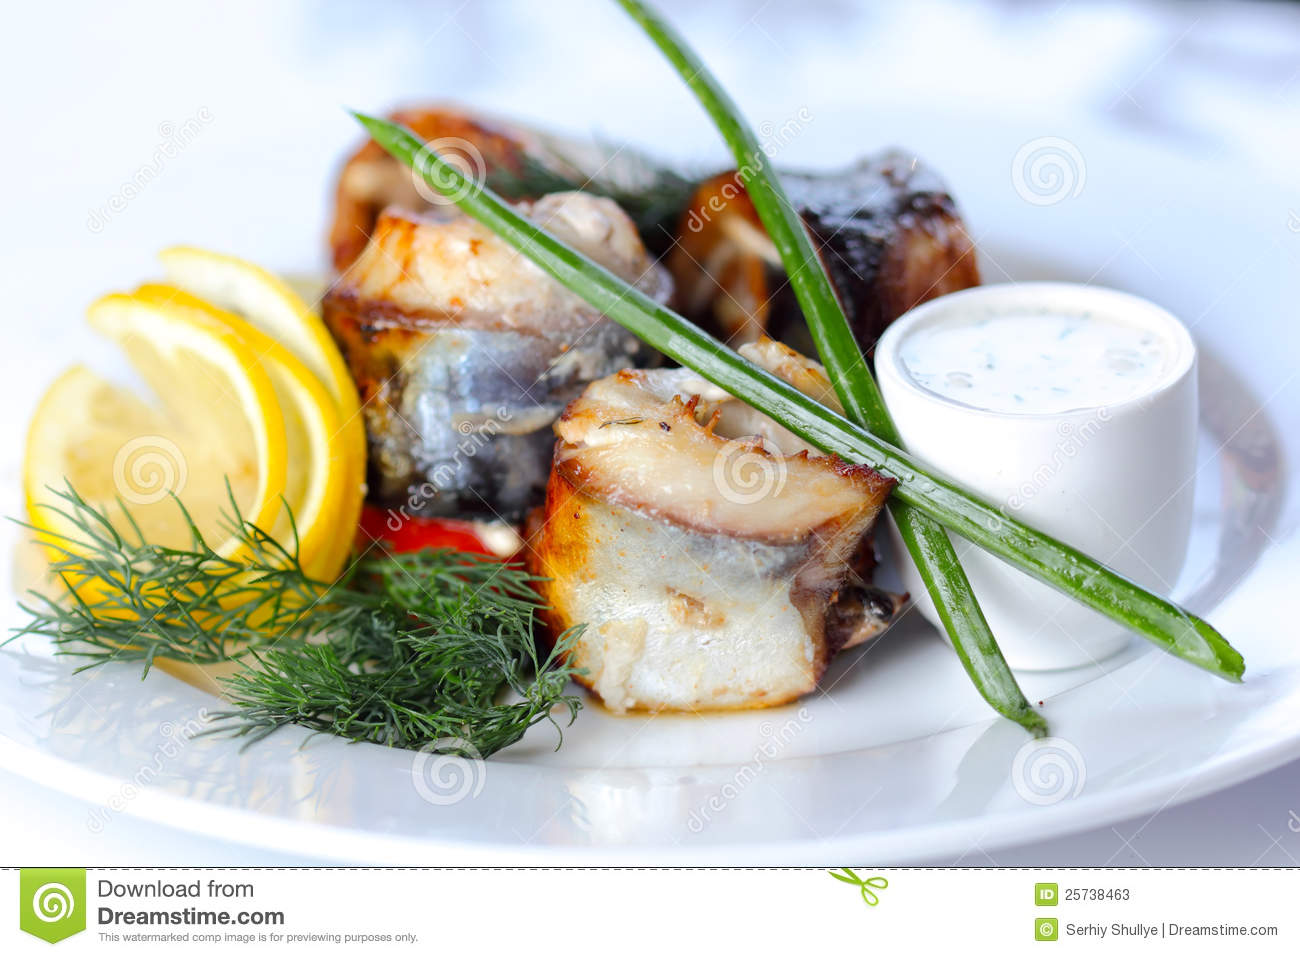 Prepared sea fish portions with greens